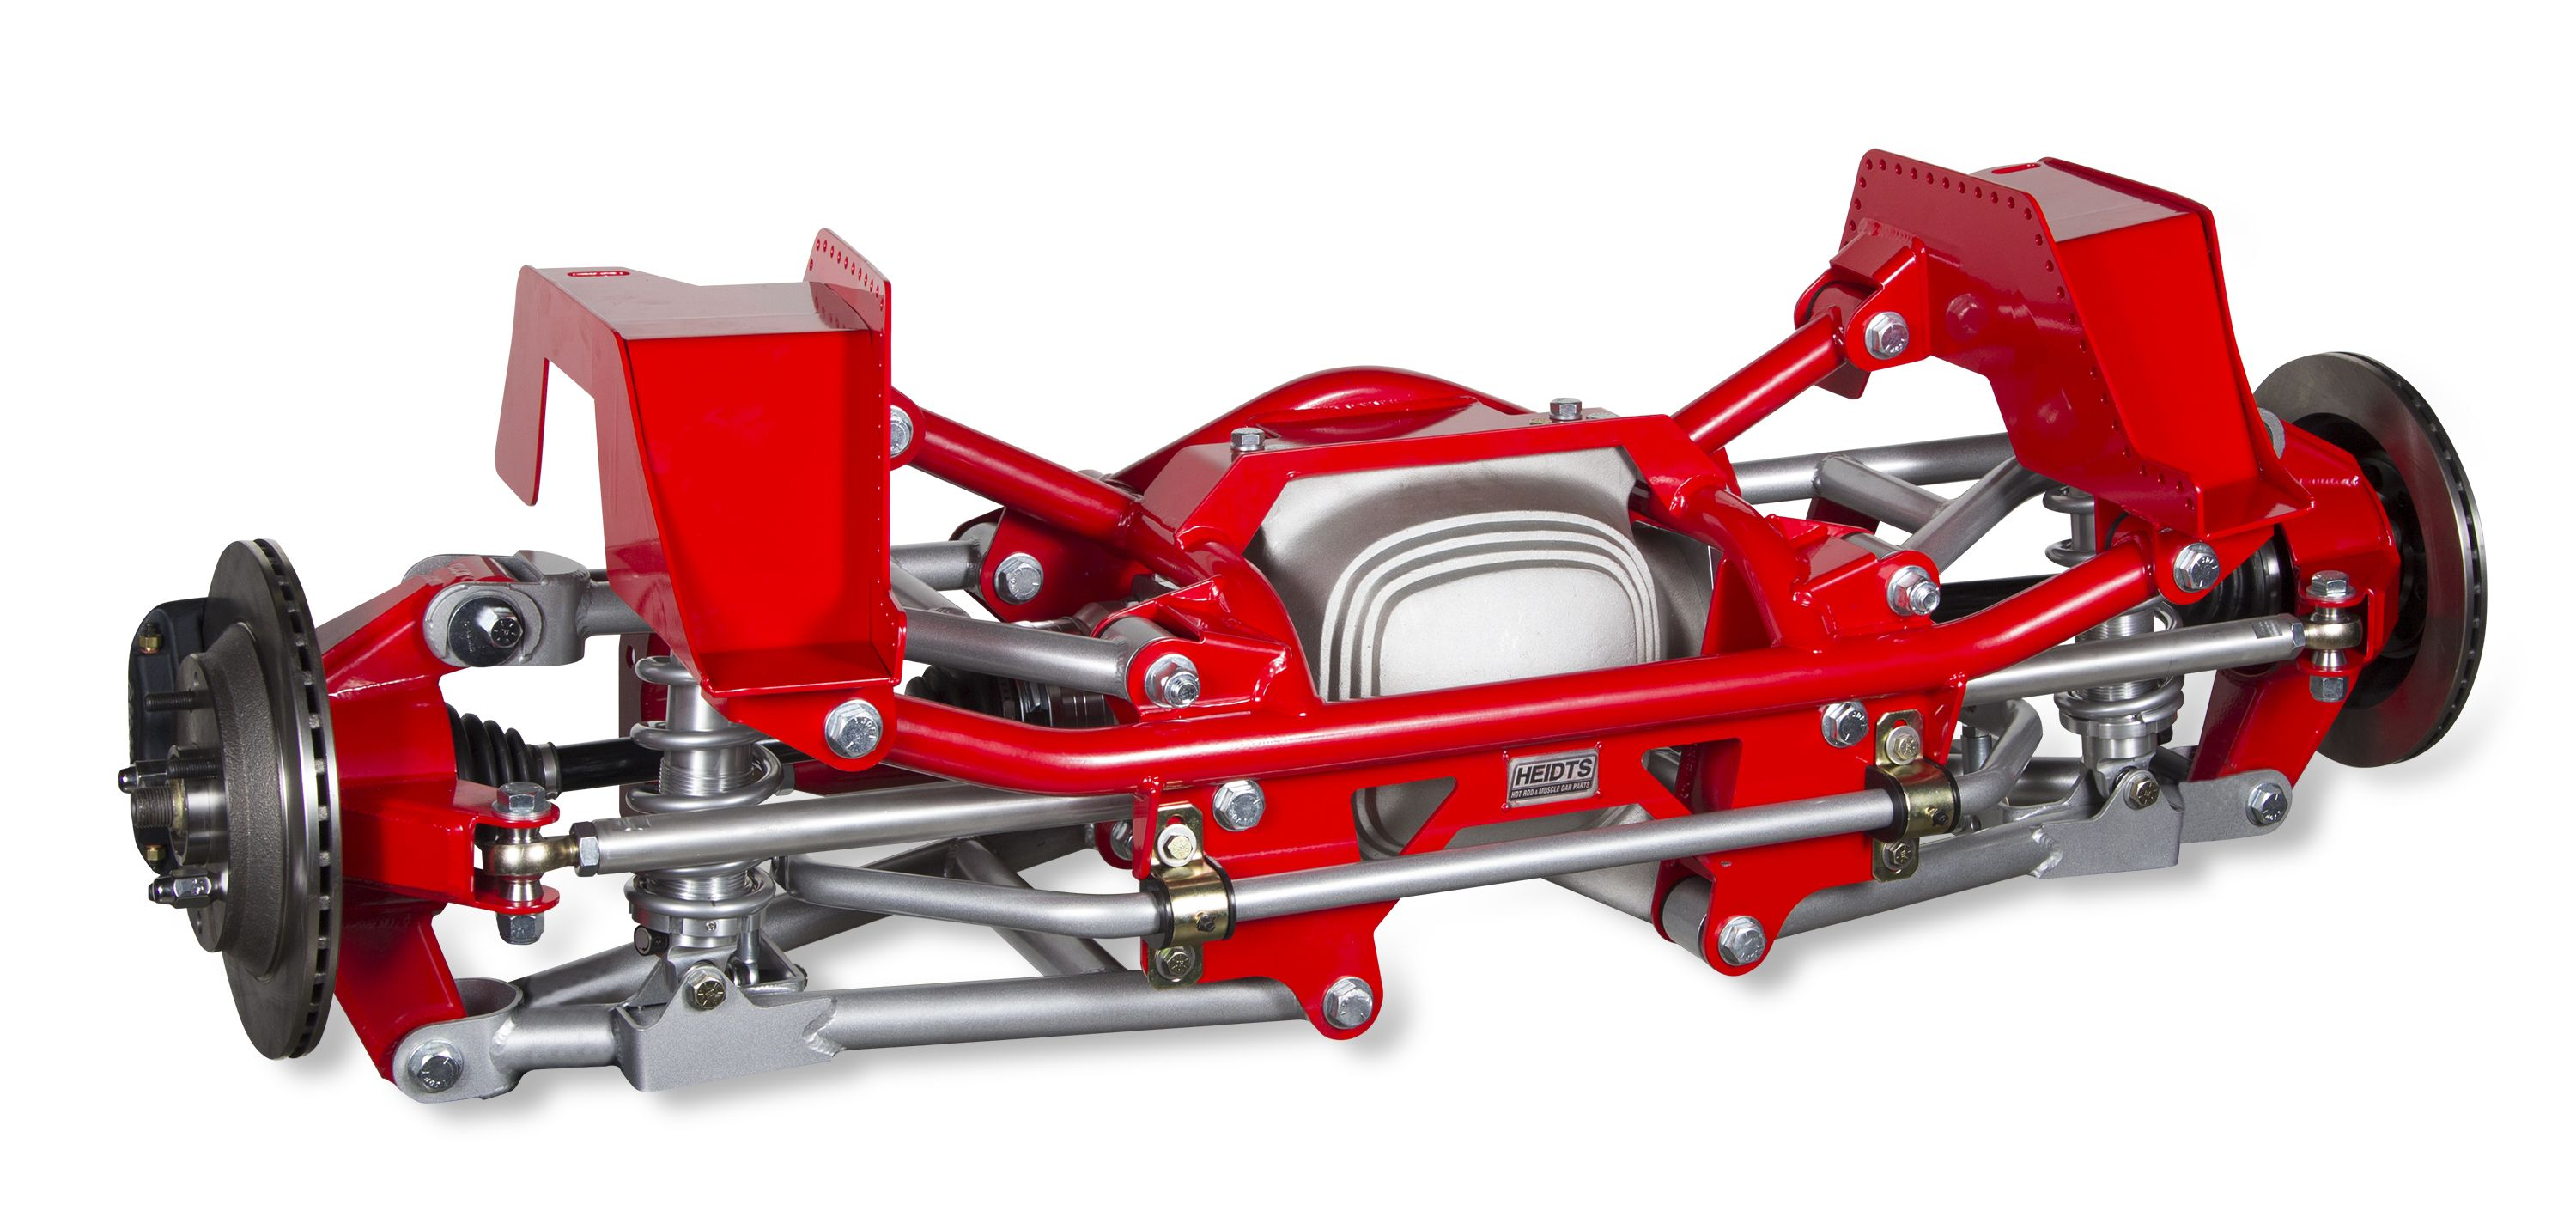 3rd gen camaro and firebird complete independent rear suspension kitupdate the handling and ride of your 3rd gen f body camaro and firebird with heidts new [ 3000 x 1424 Pixel ]